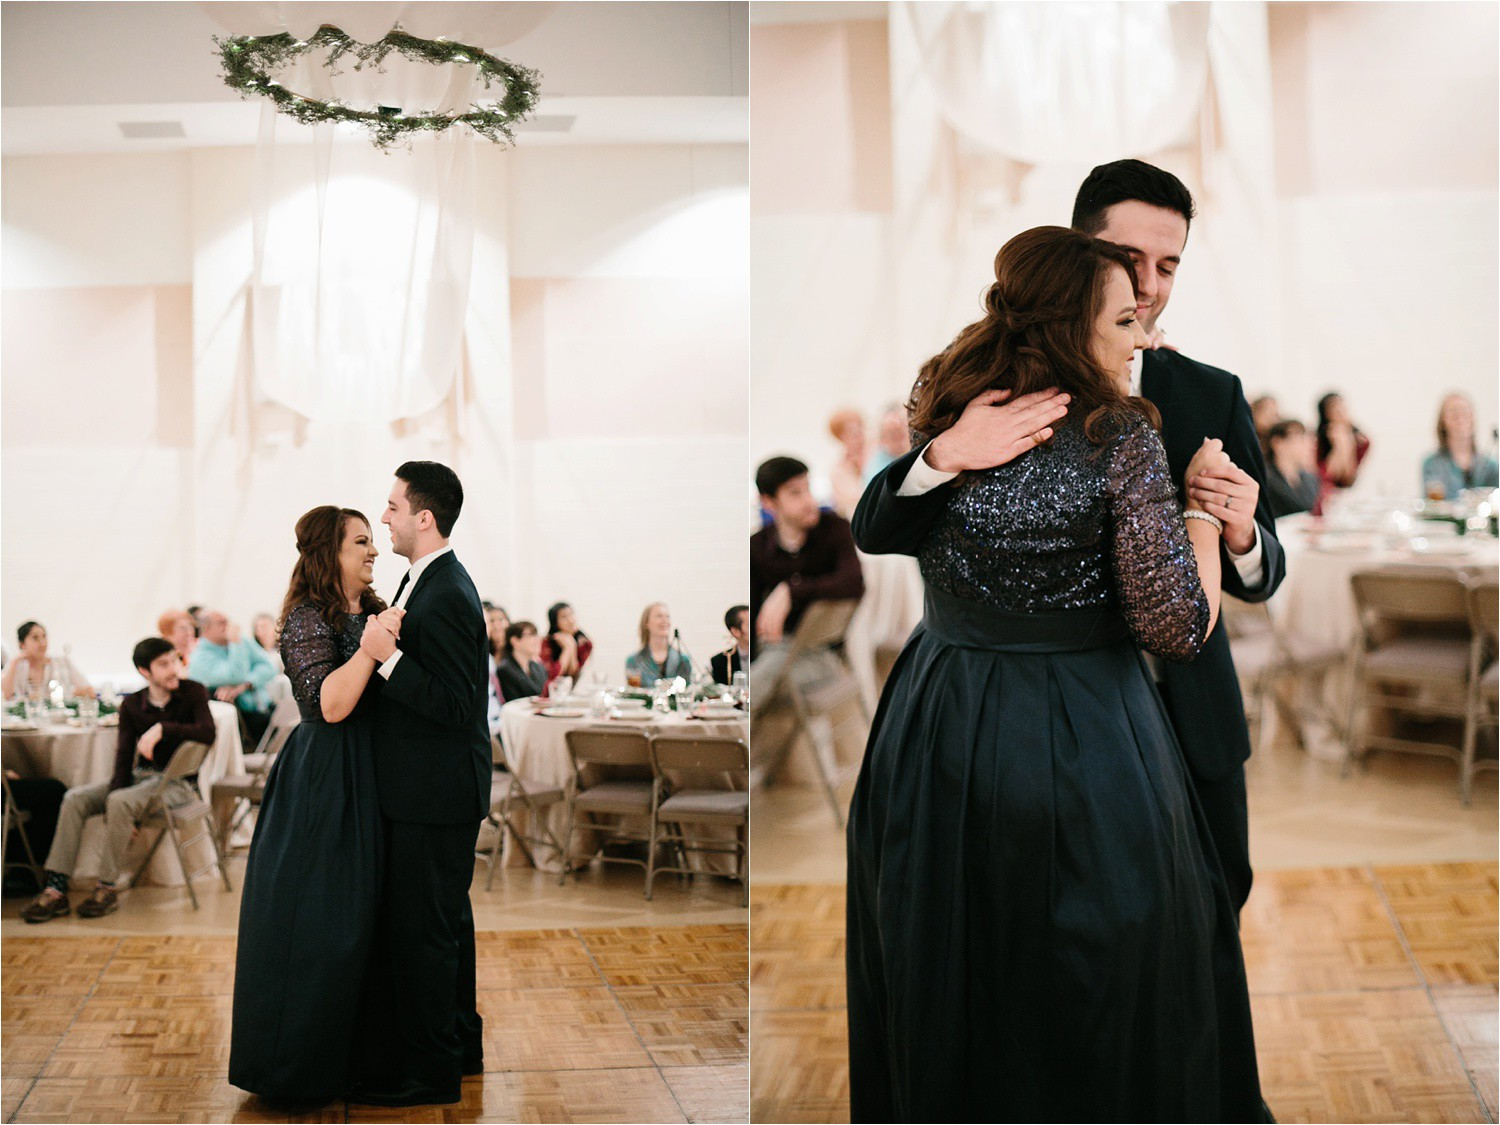 Alaina + Josh __ a wintertime wedding in Houston, TX with Christmas accents and a BHLDN dress by North Texas Wedding Photographer Rachel Meagan Photography _ 73